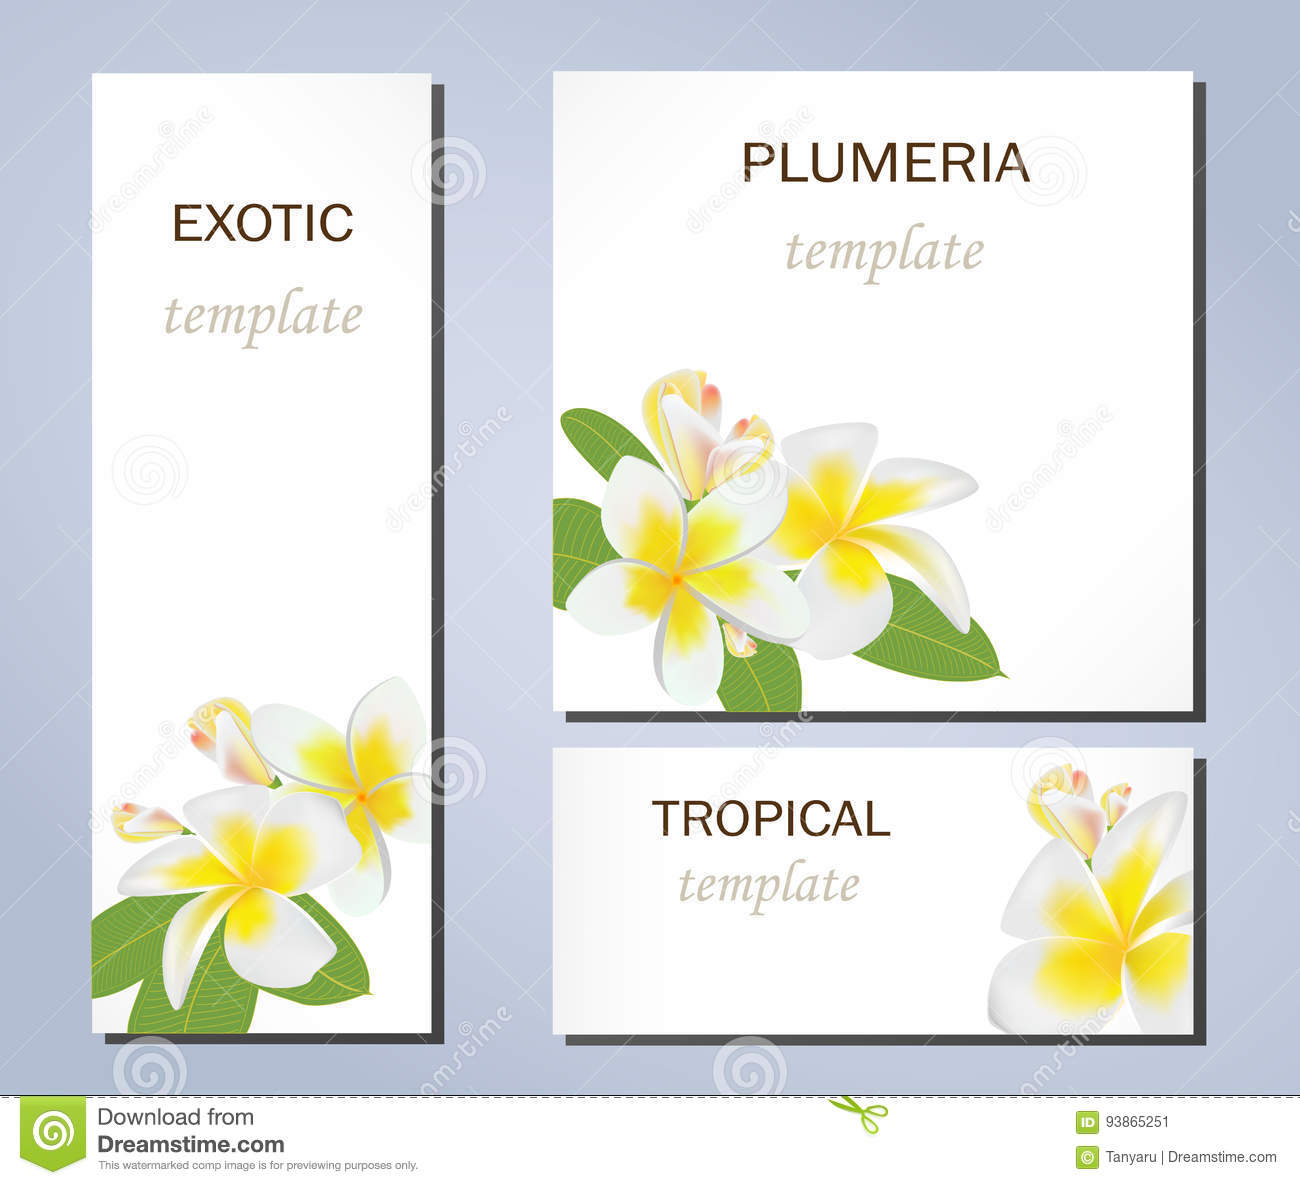 tropical flowers of plumeria on templates for business cards and